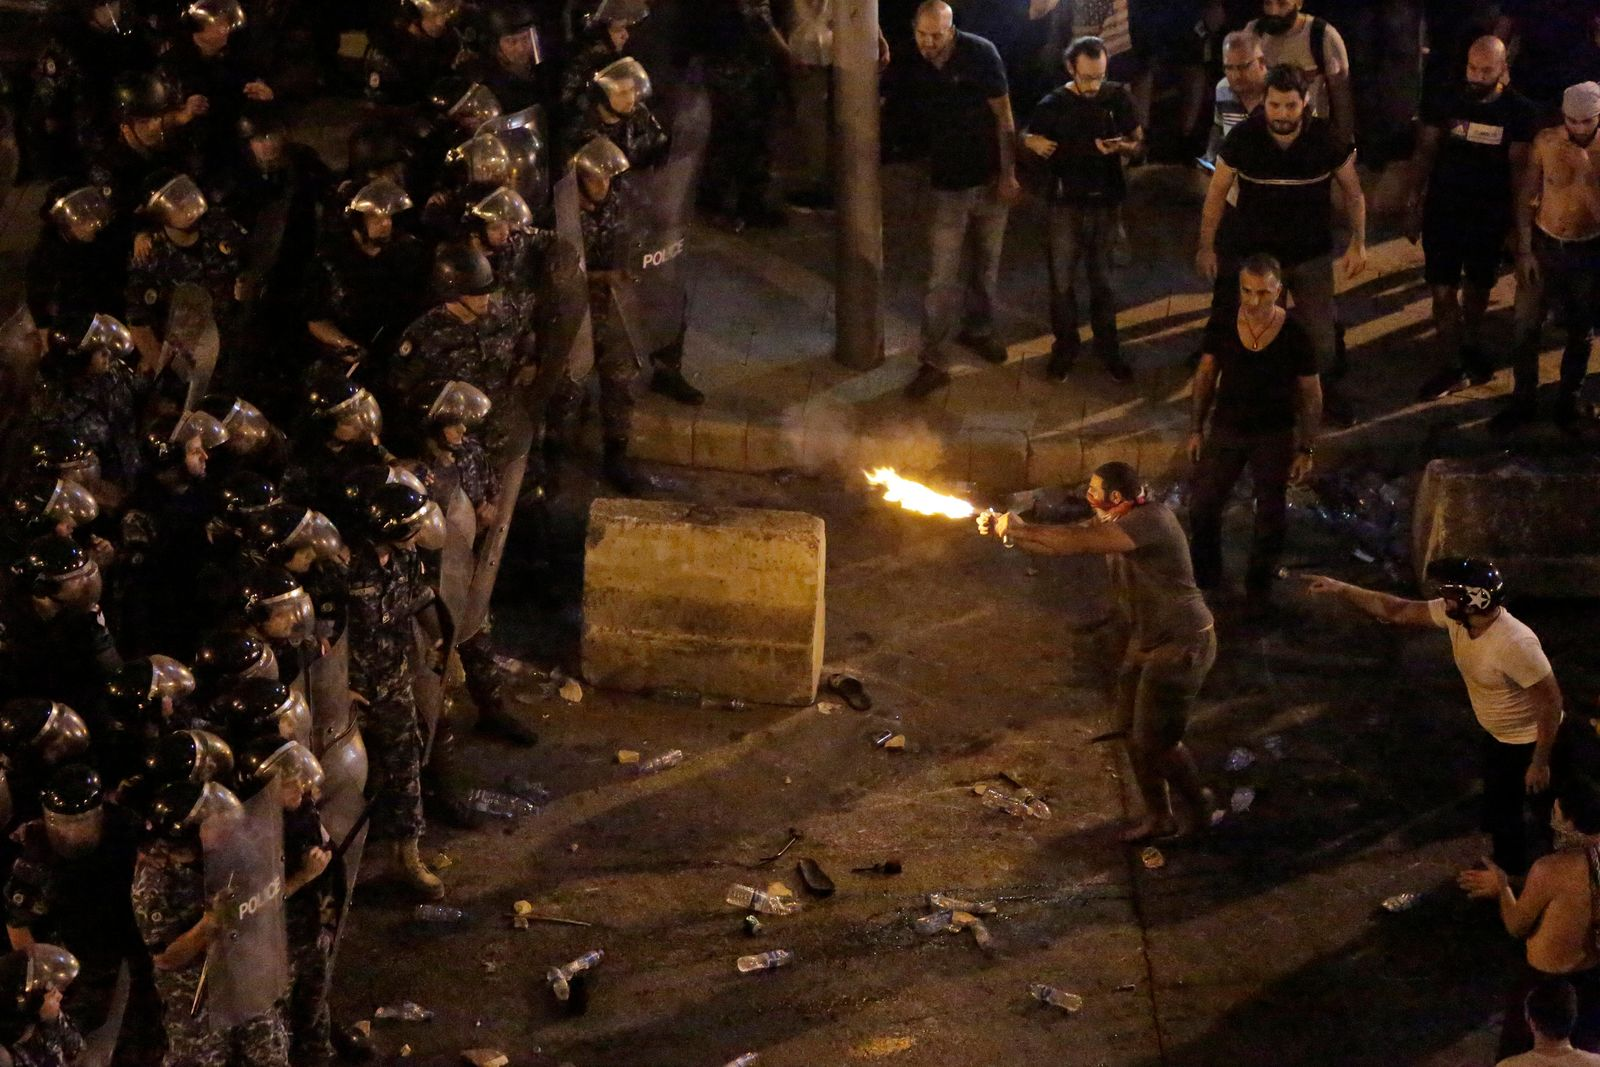 Anti-government protesters clash with riot policemen during a protest against government's plans to impose new taxes in Beirut, Lebanon, Friday, Oct. 18, 2019. (AP Photo/Hassan Ammar)